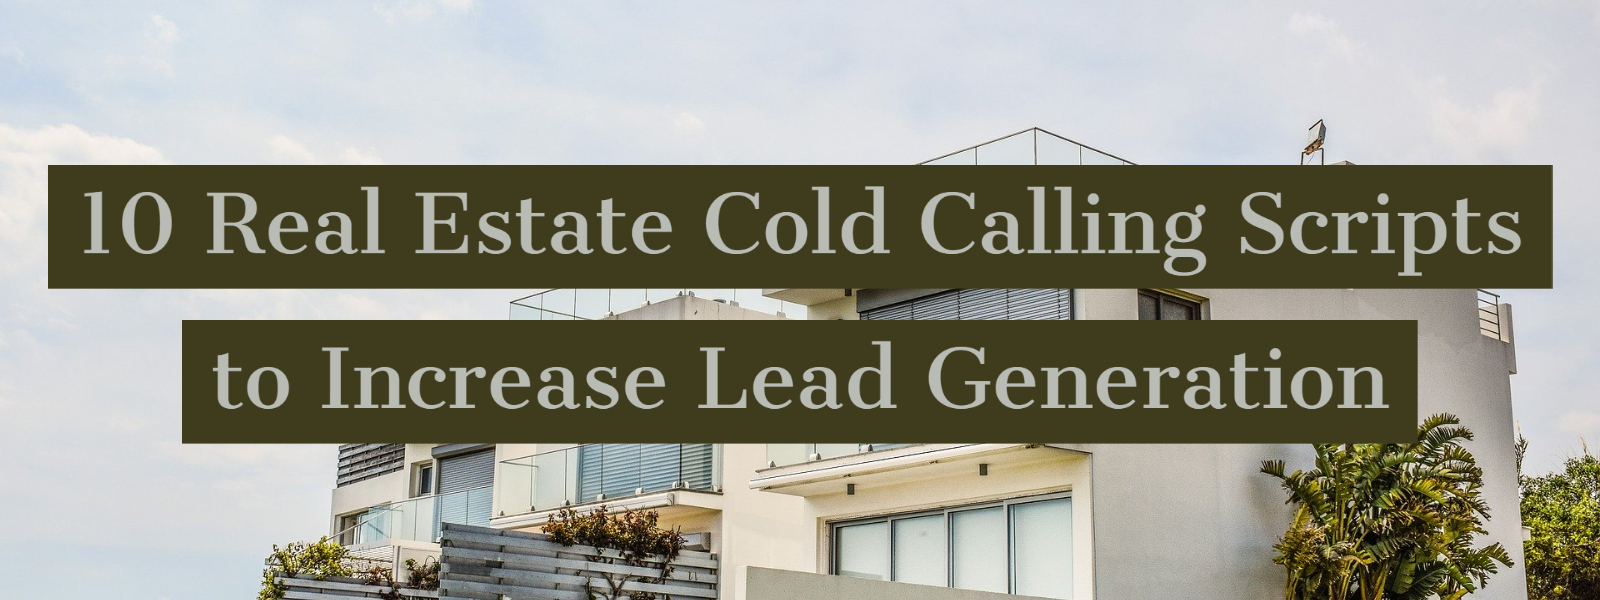 10 Real Estate Cold Calling Scripts to Increase Lead Generation